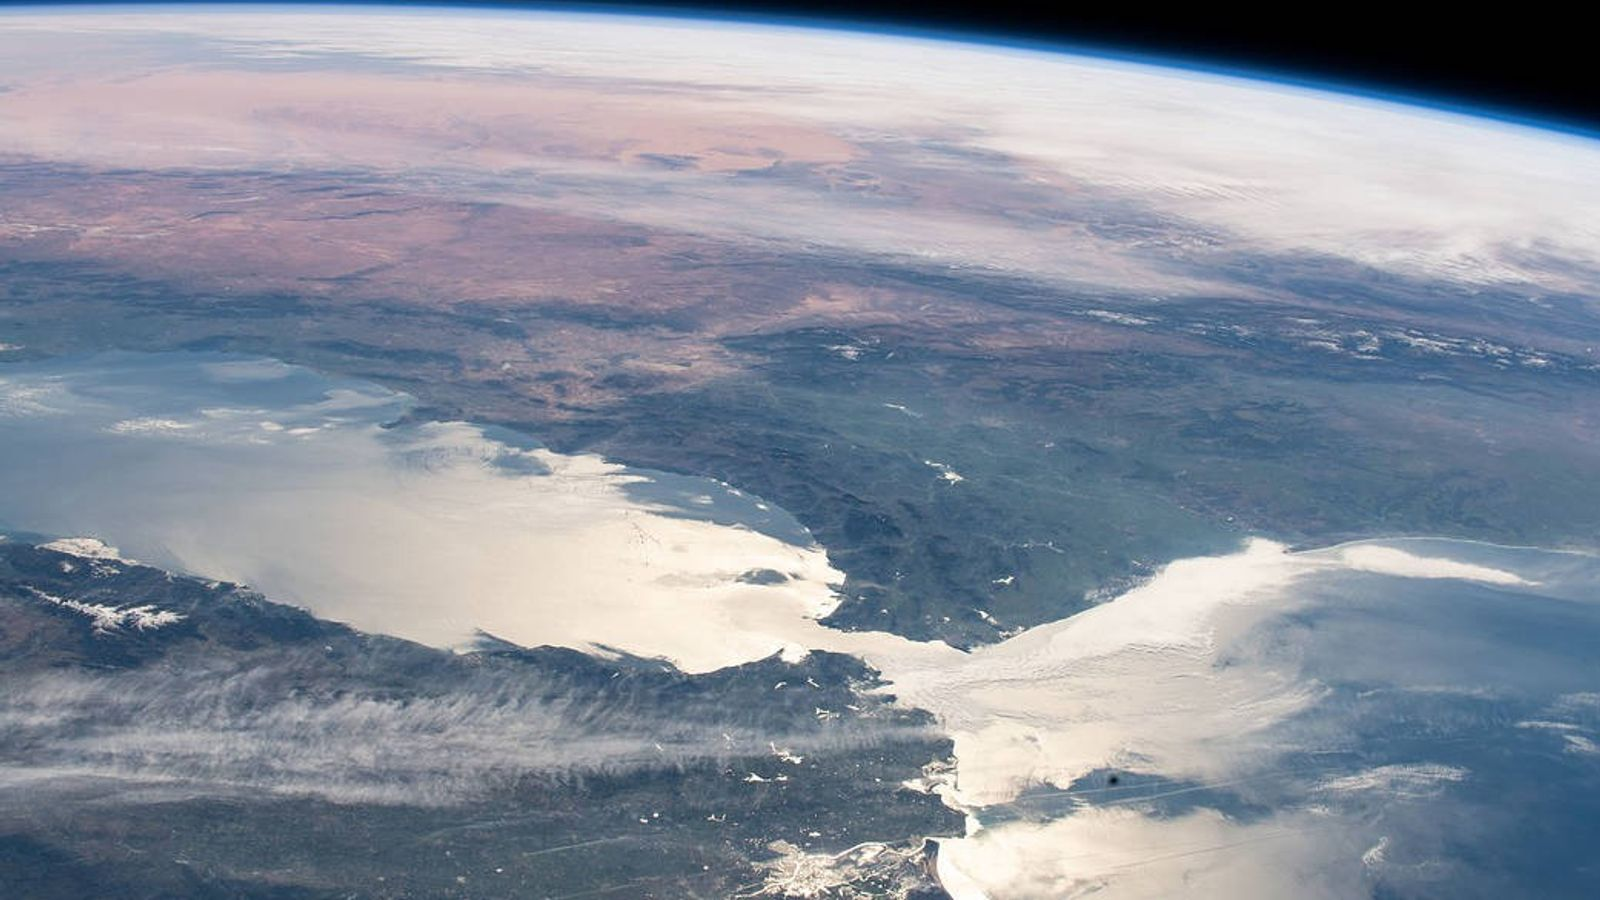 The Mediterranean Sea's only connection to the world's oceans is through a narrow strip of water ...